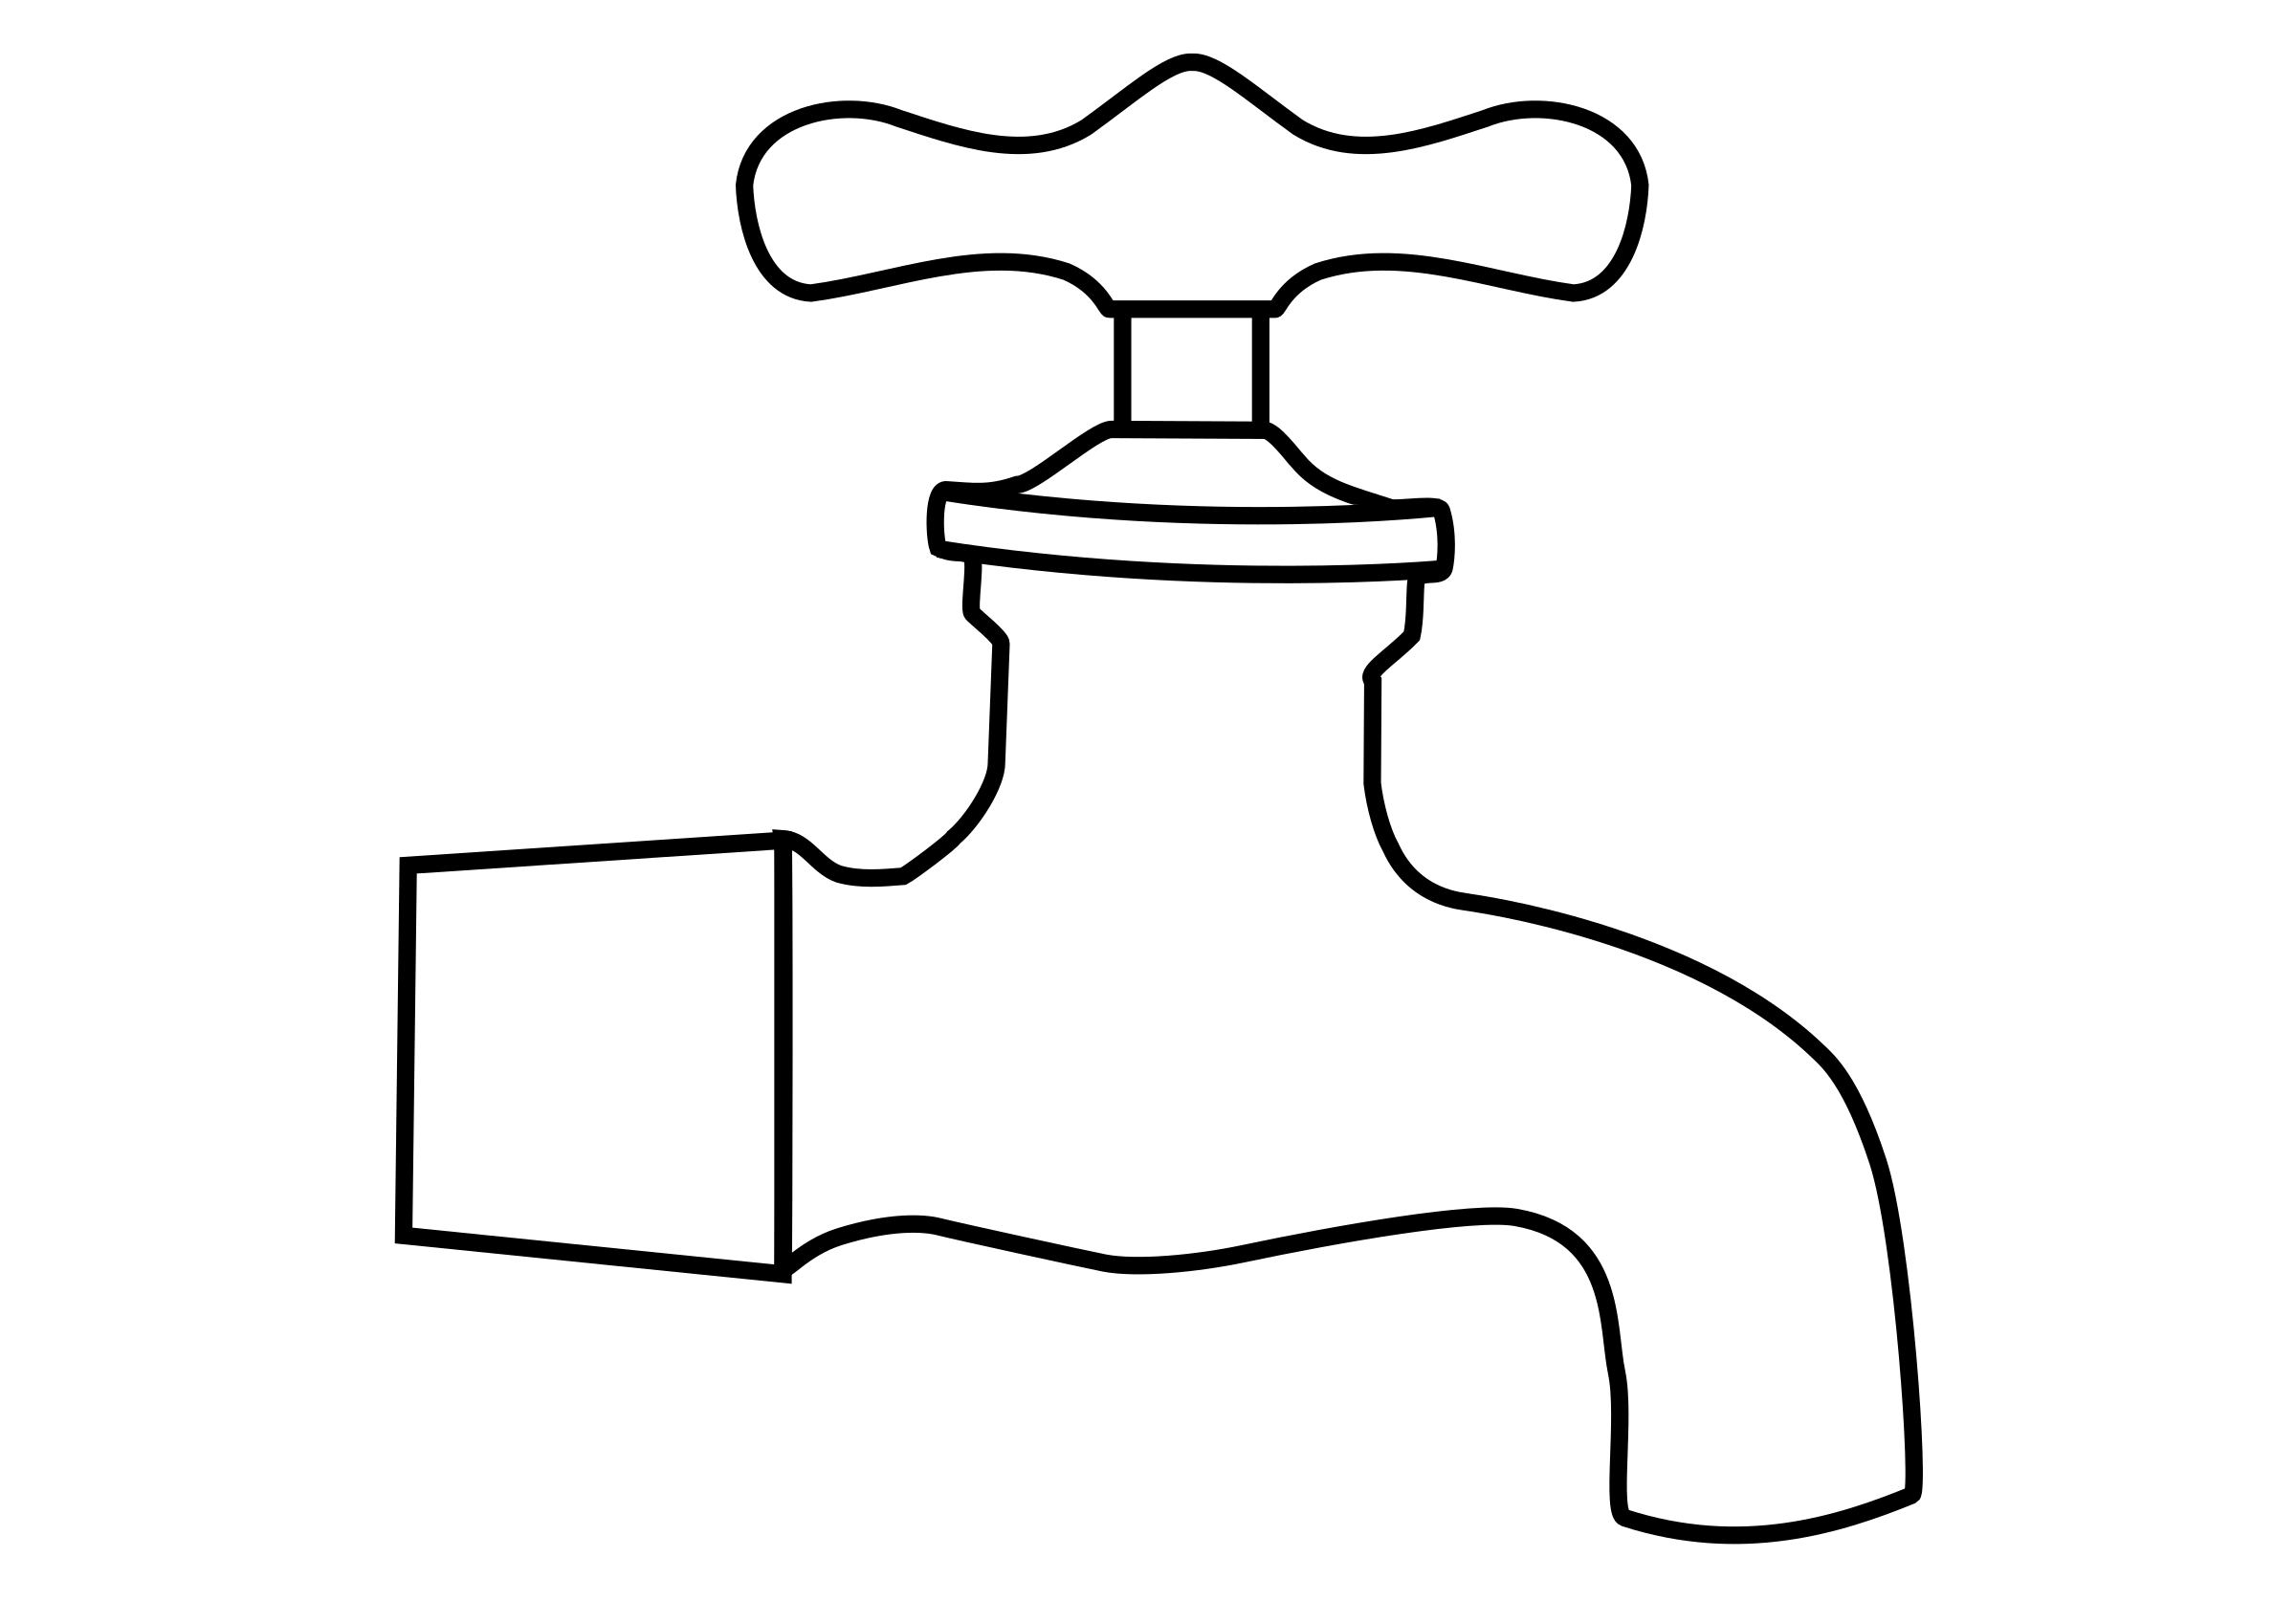 Water faucet clipart free vector download Free Water Faucet Cliparts-Vector, Download Free Clip Art ... vector download